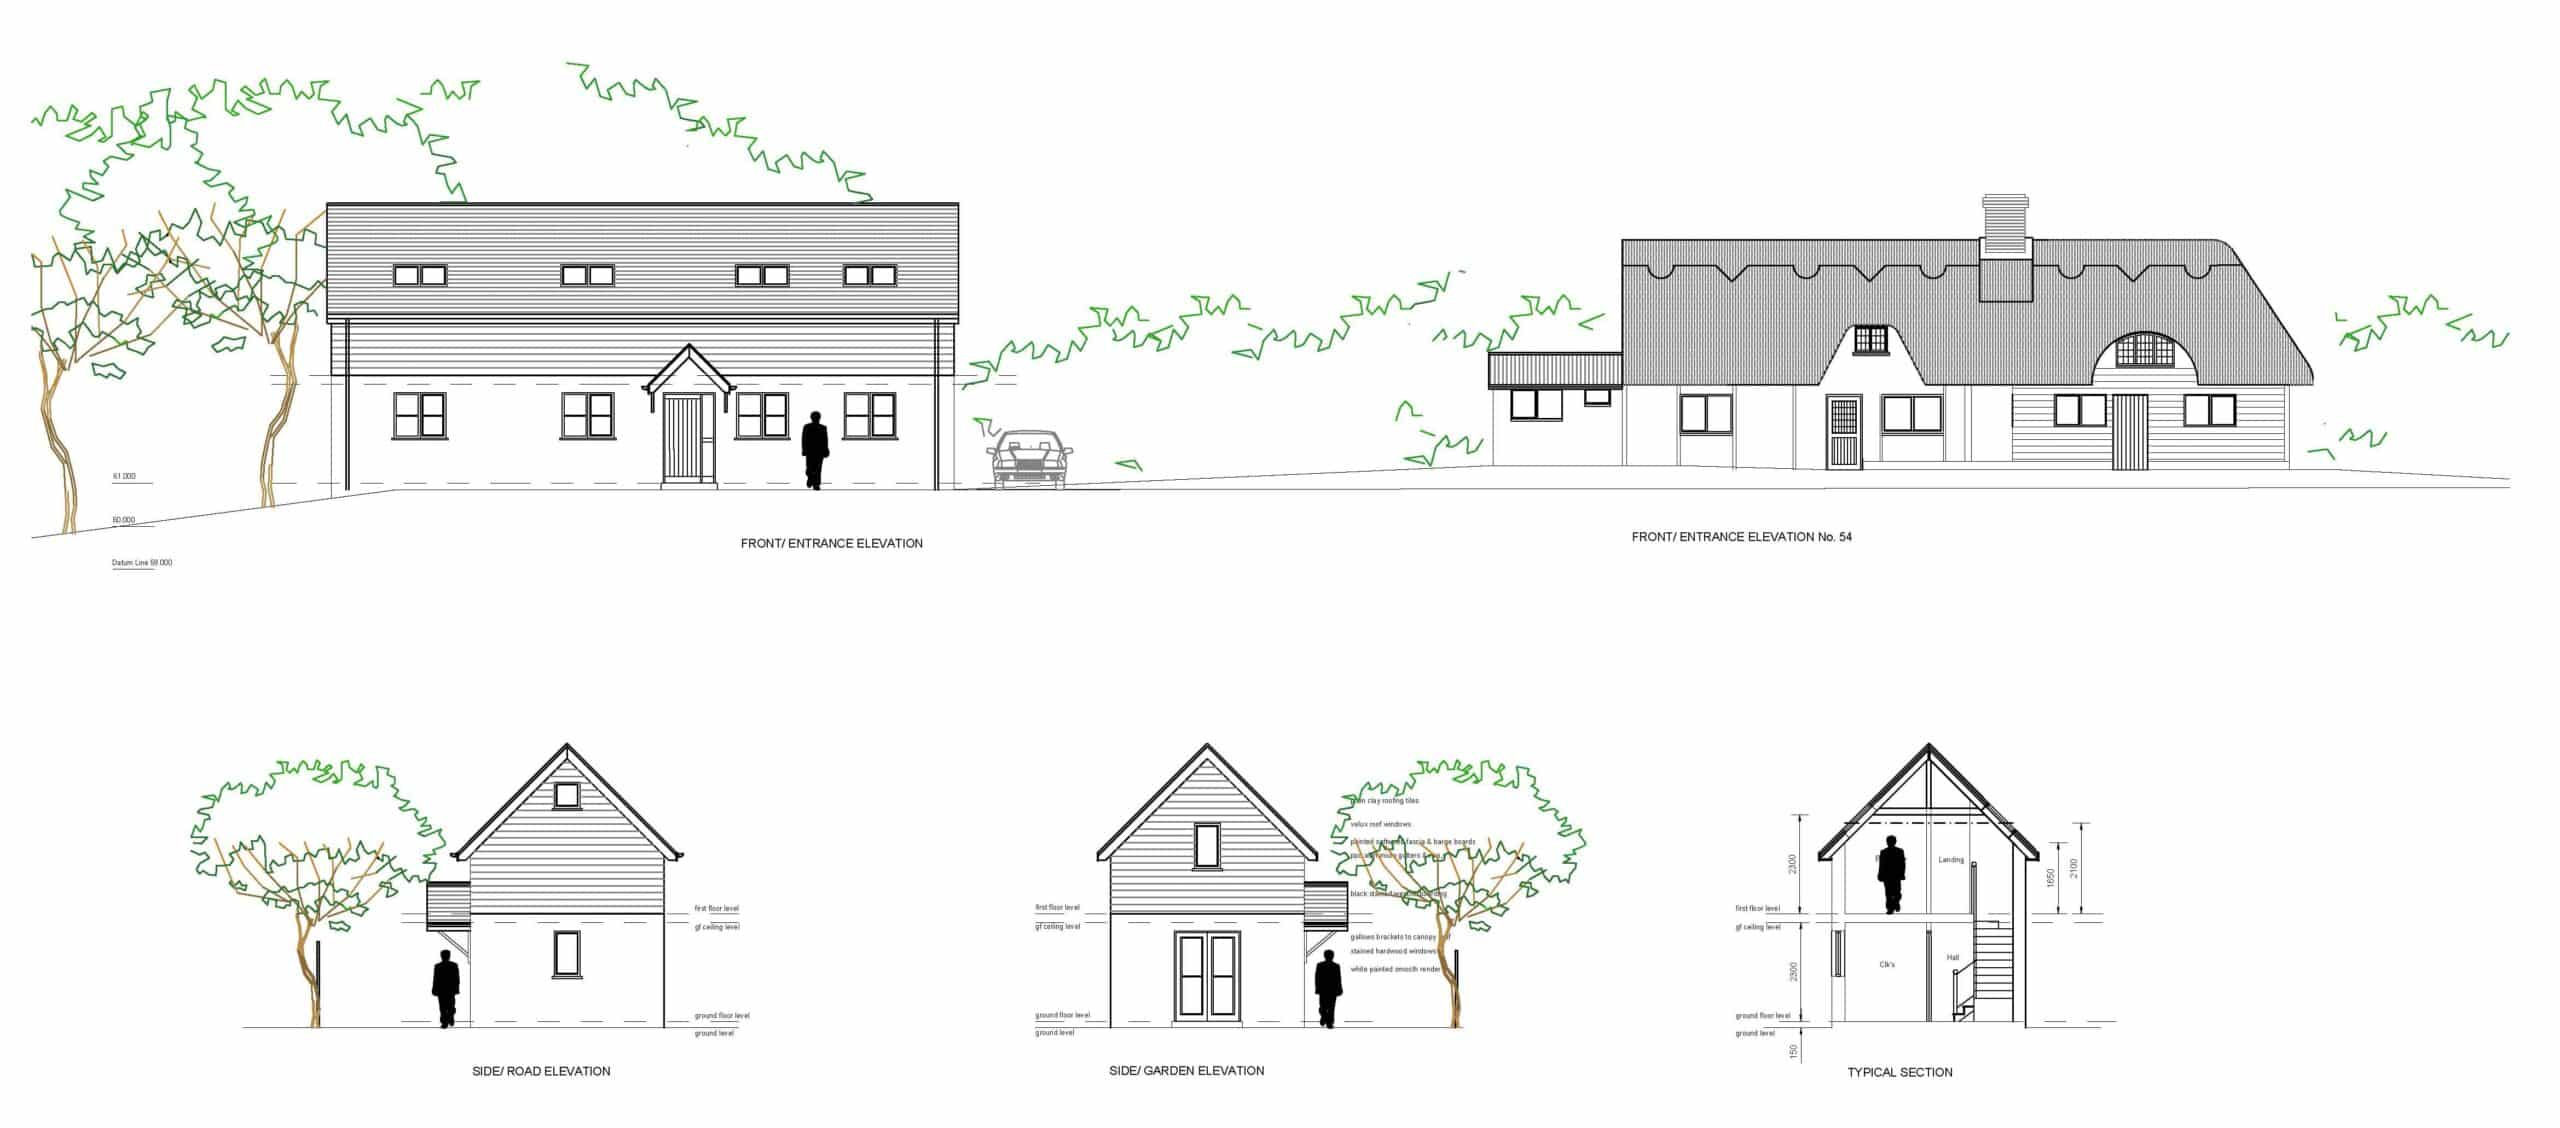 PLANNING PERMISSION FOR INFILL DWELLING WITHIN SETTING OF A LISTED BUILDING